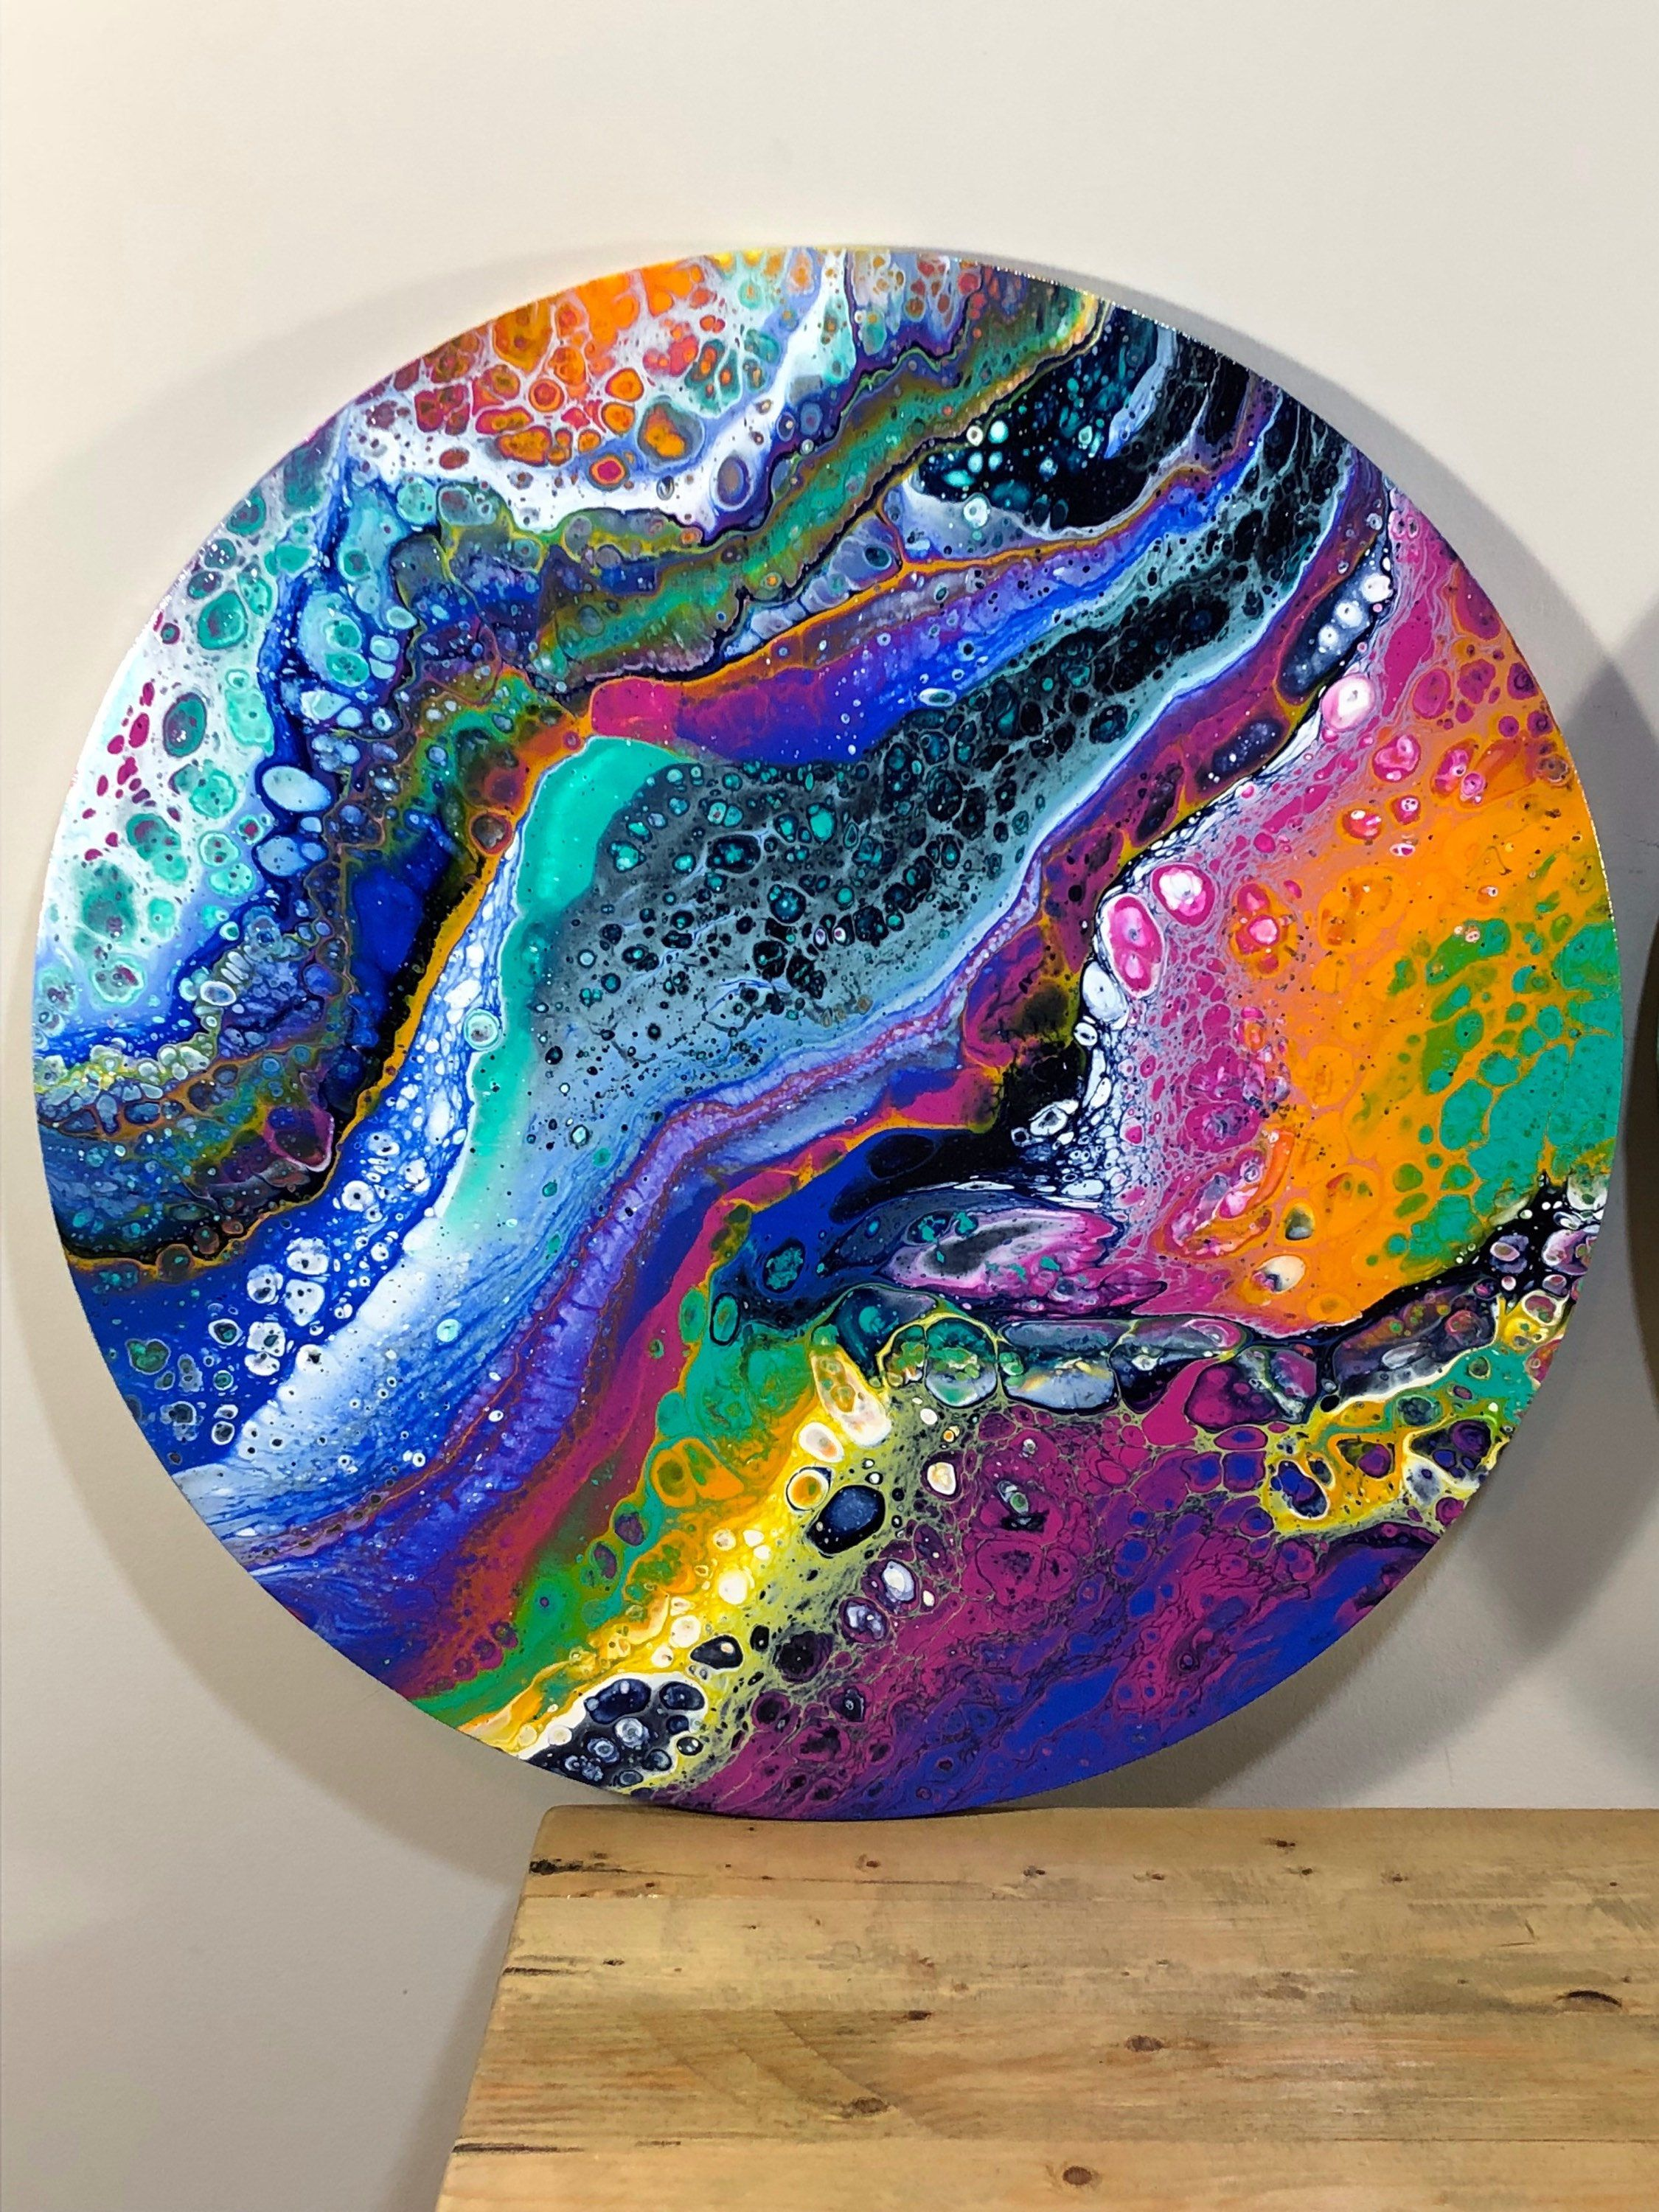 FREE SHIPPING on this 20' round fluid art painting on